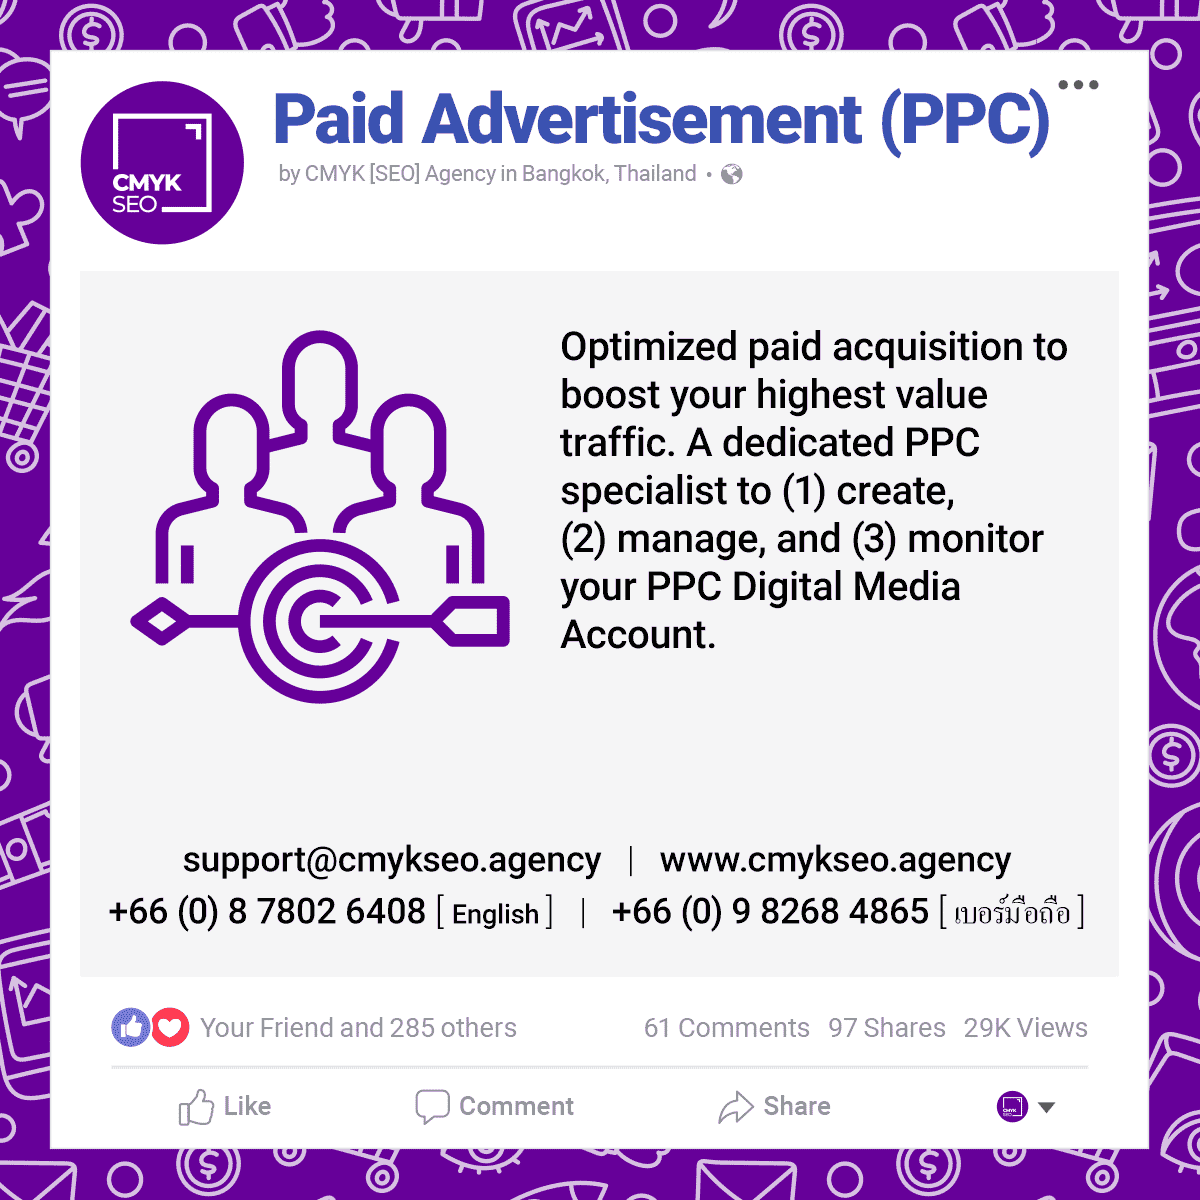 Paid Advertisement PPC Services by CMYK SEO Agency in Bangkok Thailand | CMYK [SEO]: Bangkok SEO/SEM Agency